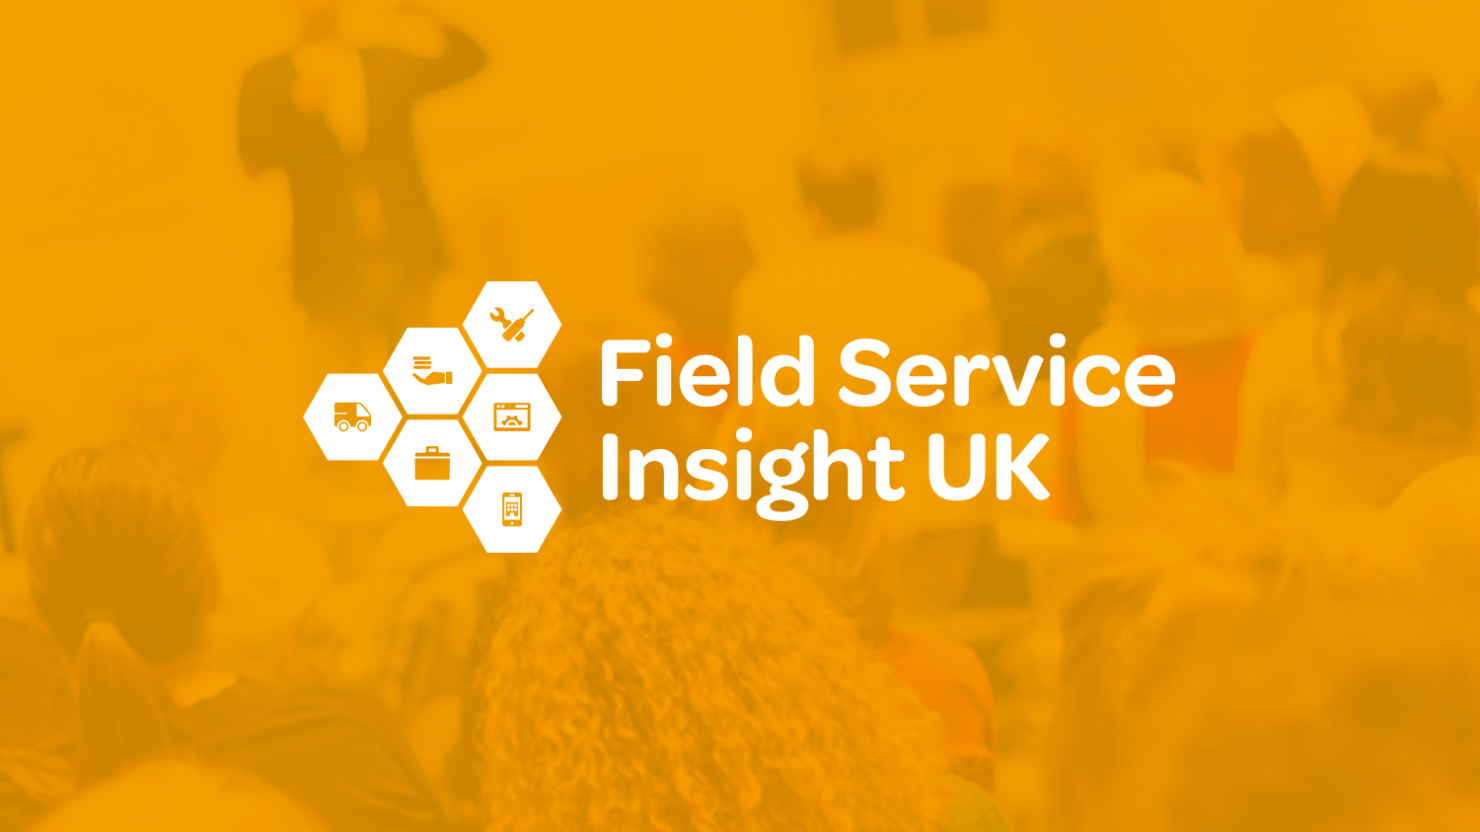 creative logo design and event branding for field service insight uk